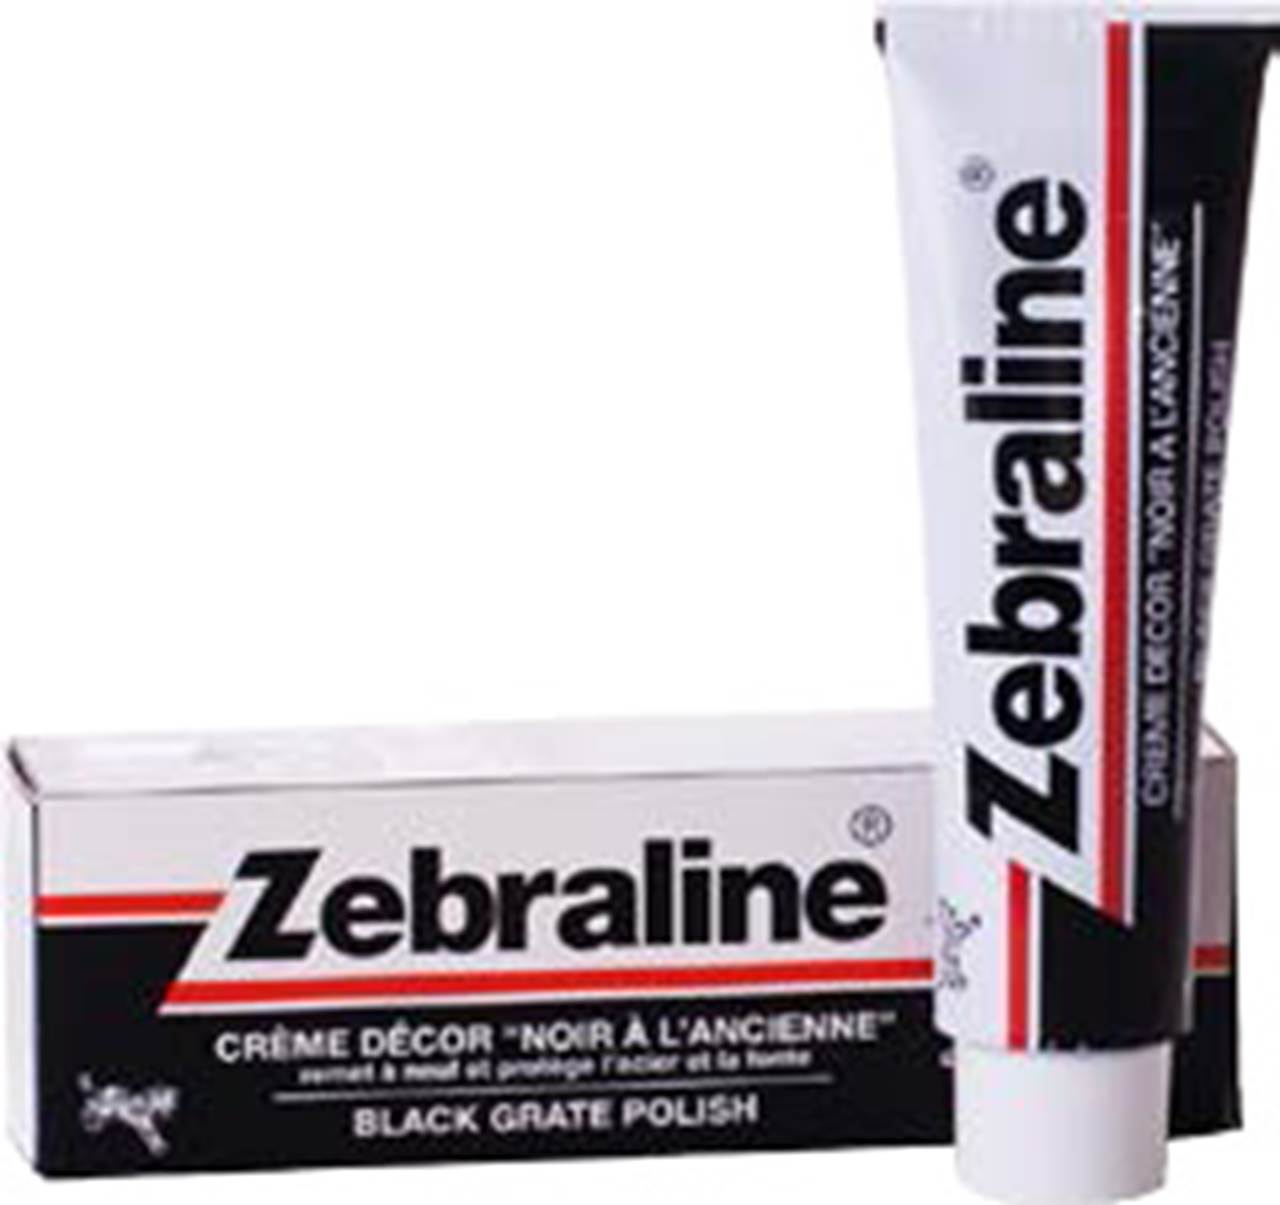 ZEBRALINE ovnspolish 100ml stor tube